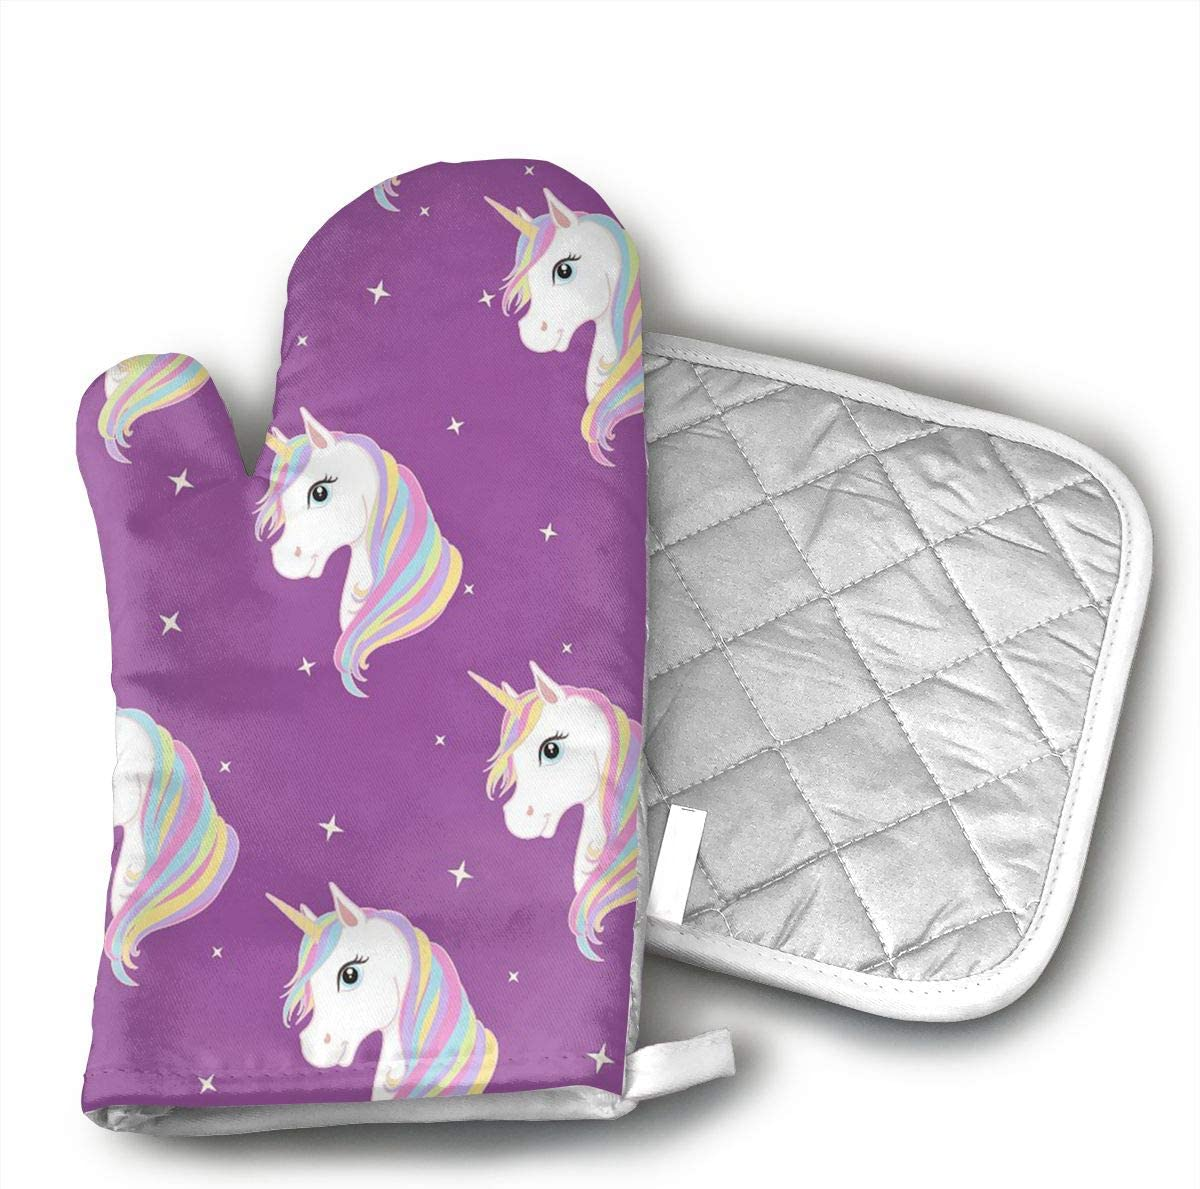 Unicorn in Purple Oven Mitts Kitchen Gloves and Pot Holders 2pcs for Kitchen Set with Cotton Neoprene Silicone Non-Slip Grip,Heat Resistant,Oven Gloves for BBQ Cooking Baking Grilling